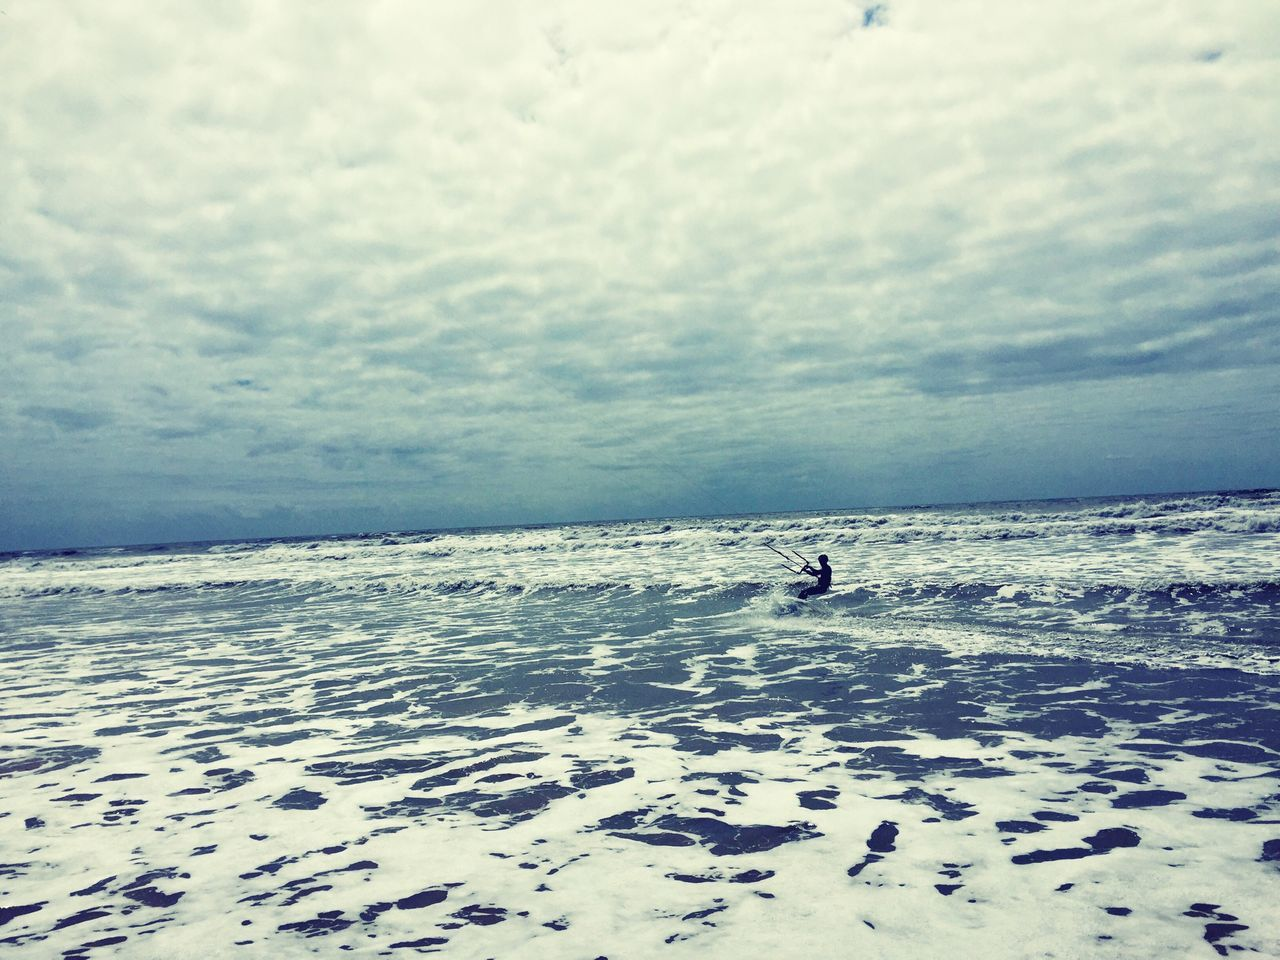 Man Kite Surfing In Sea Against Cloudy Sky